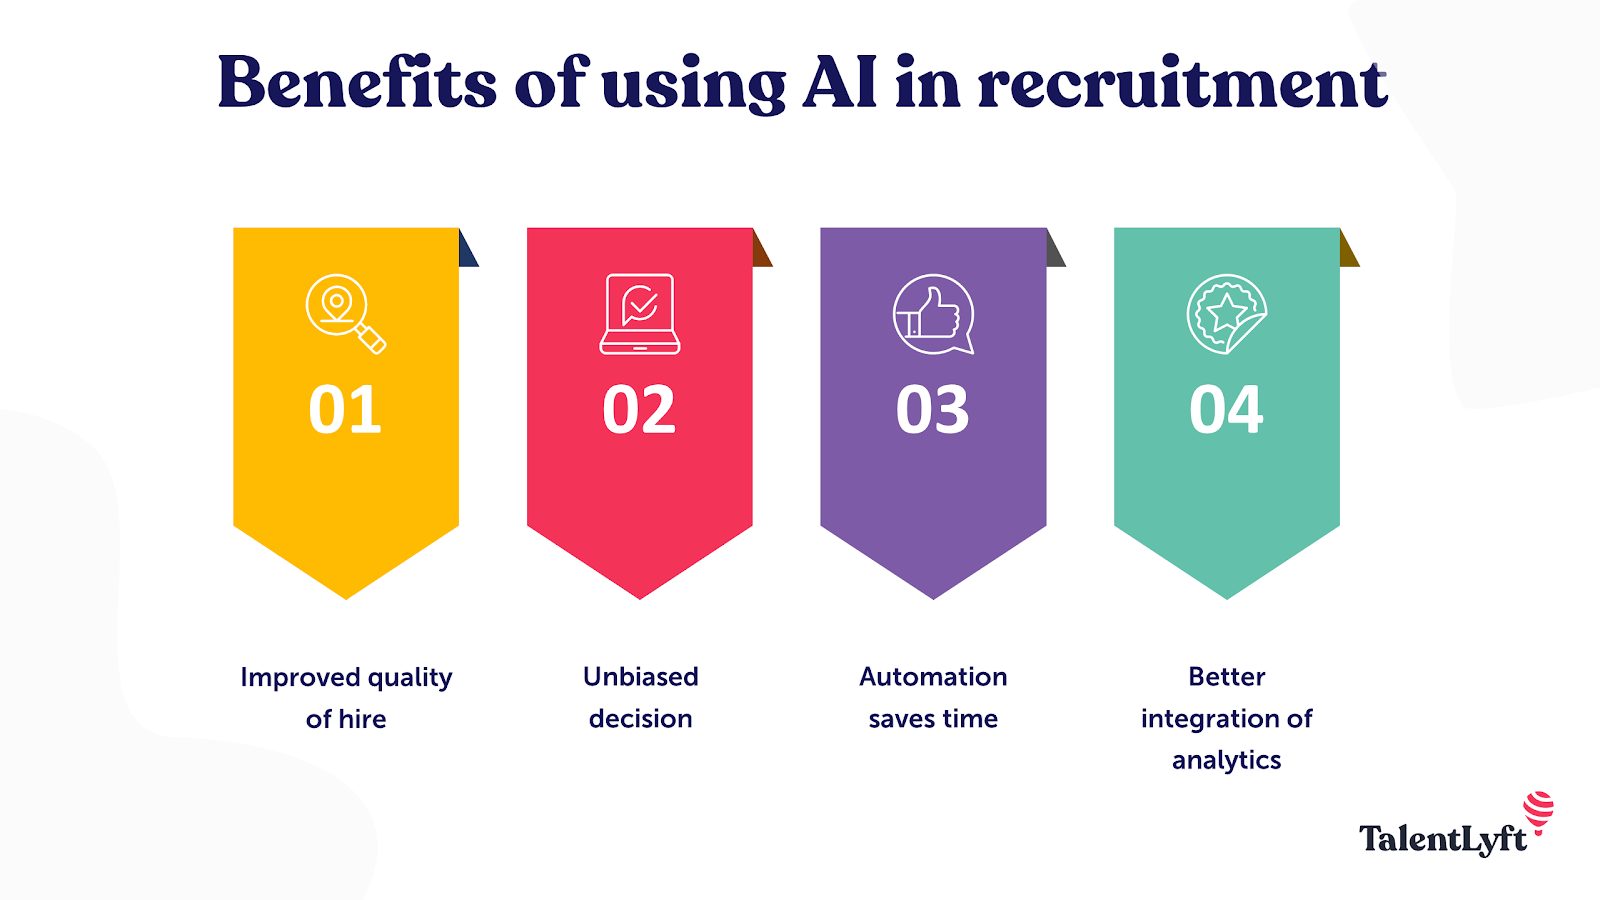 Benefits of using AI in recruitment